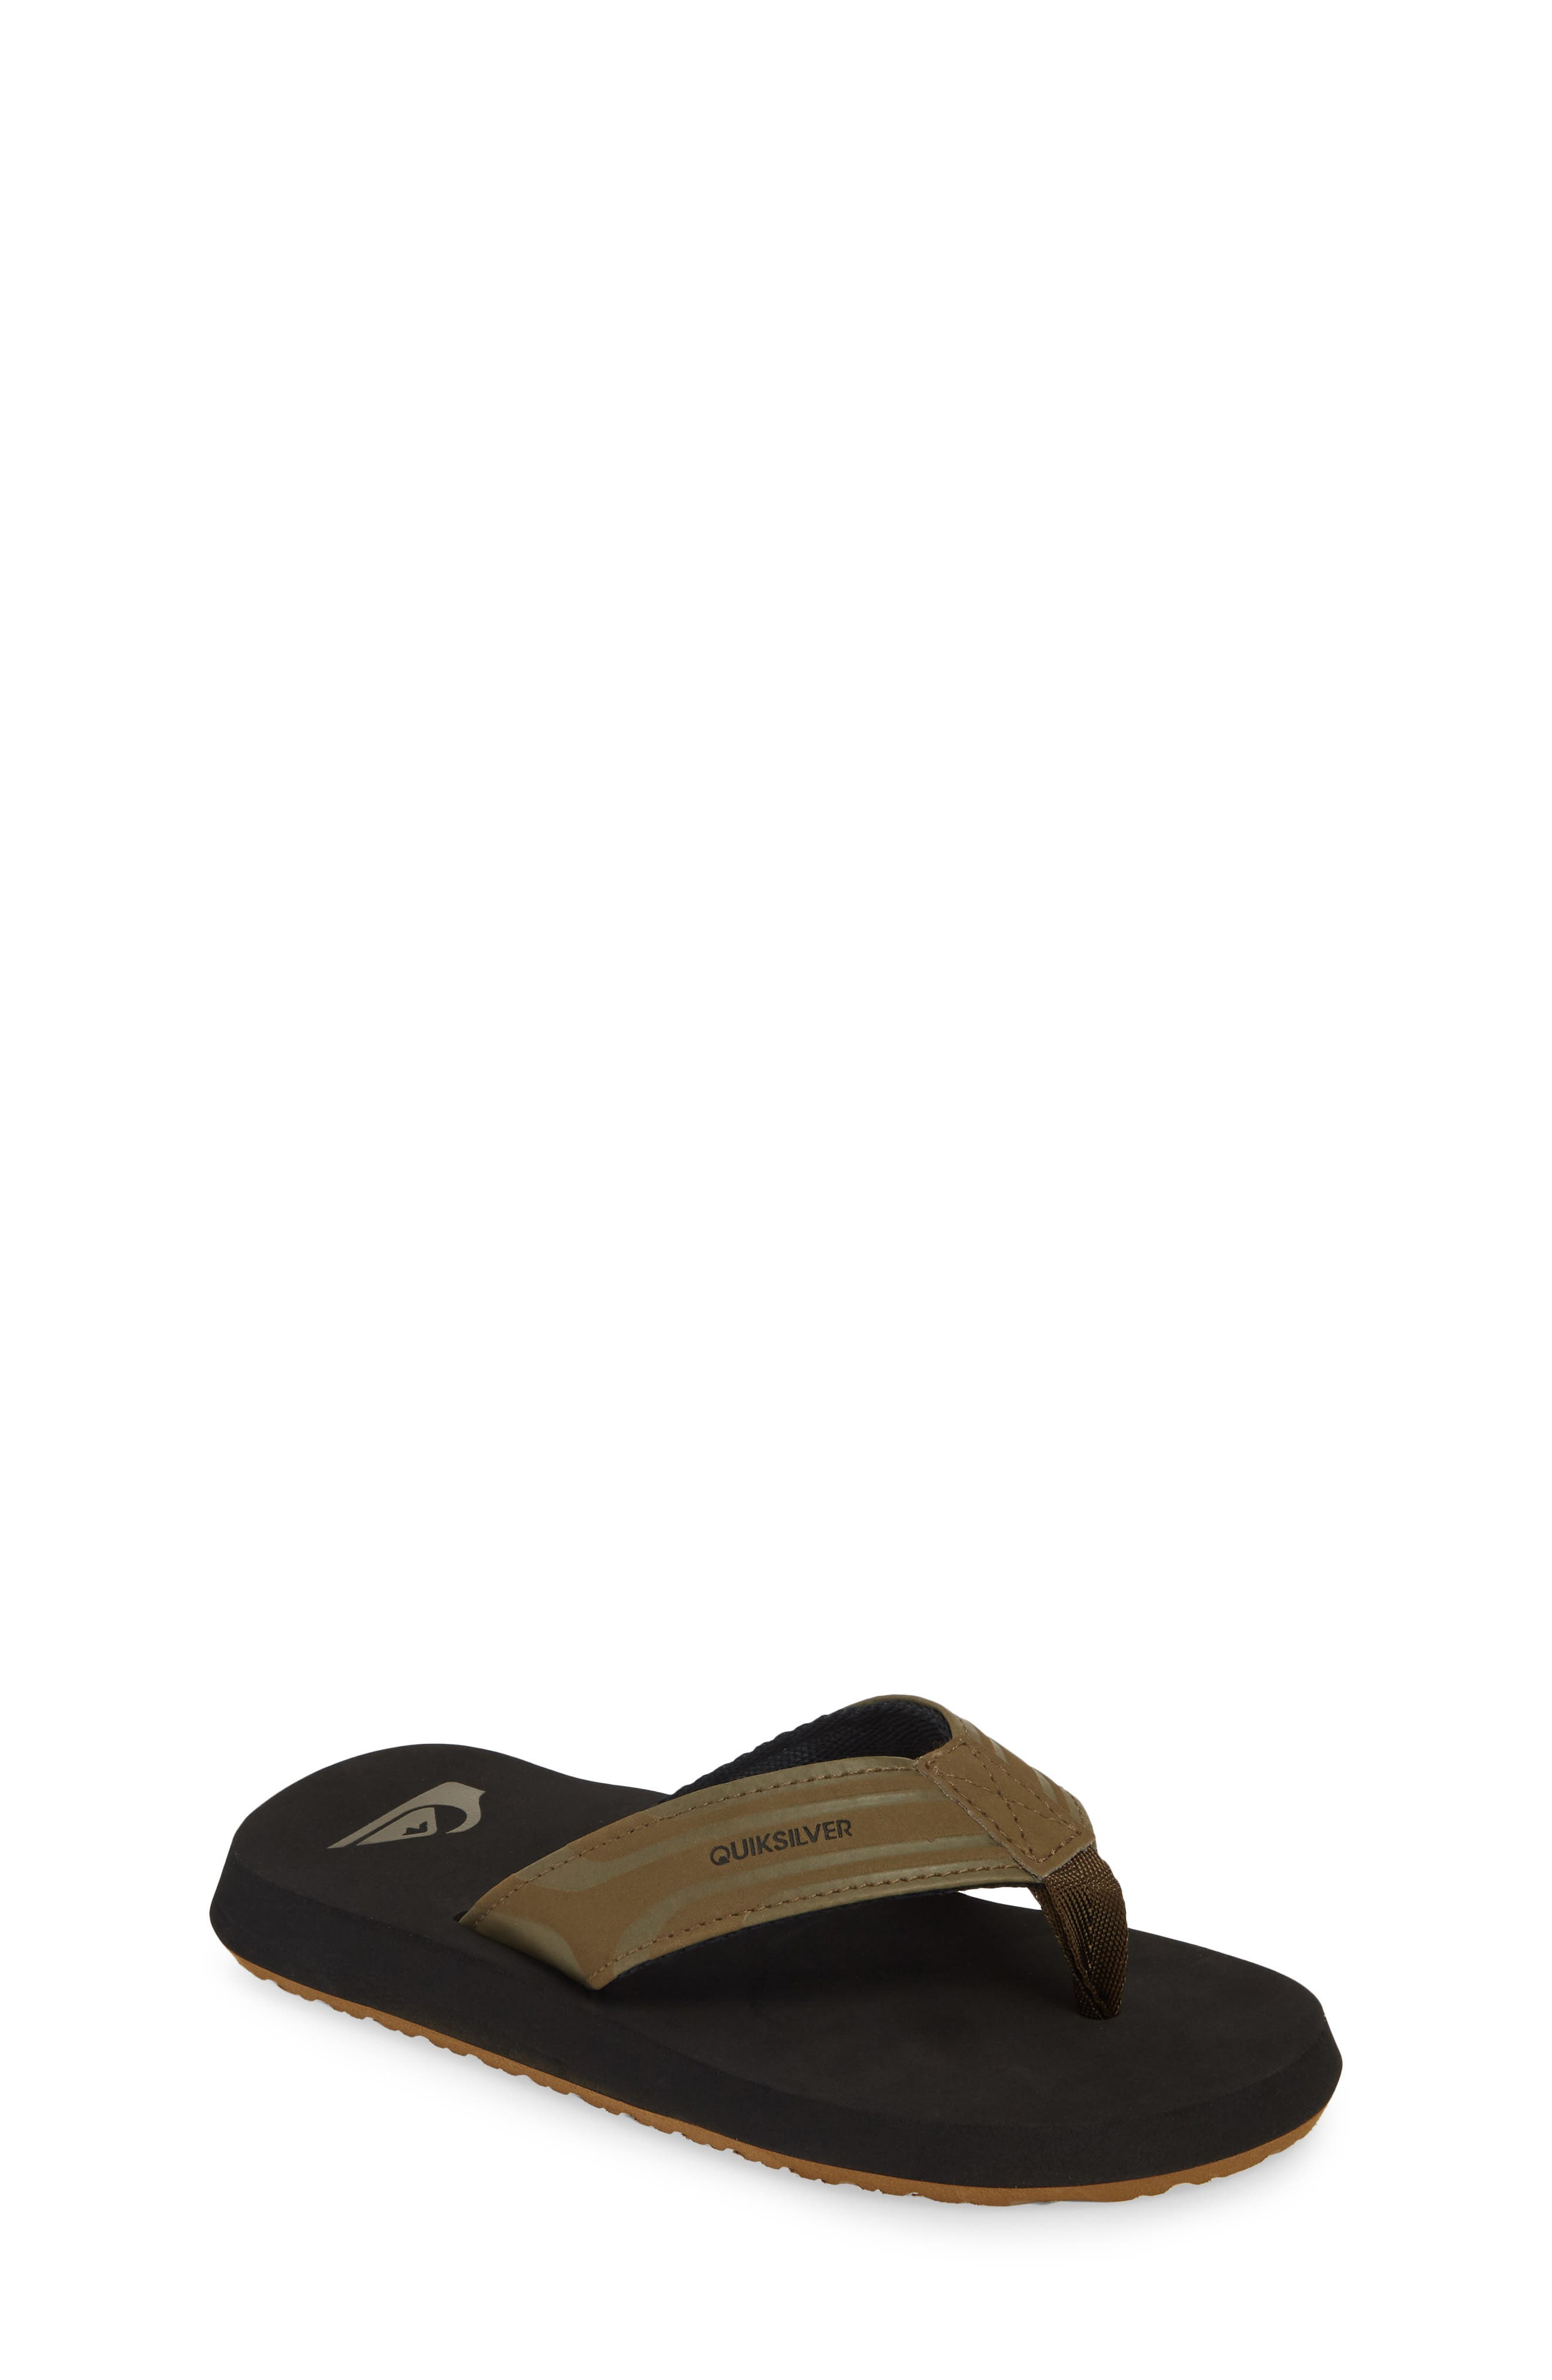 QUIKSILVER, Monkey Wrench Flip Flop, Main thumbnail 1, color, TAN